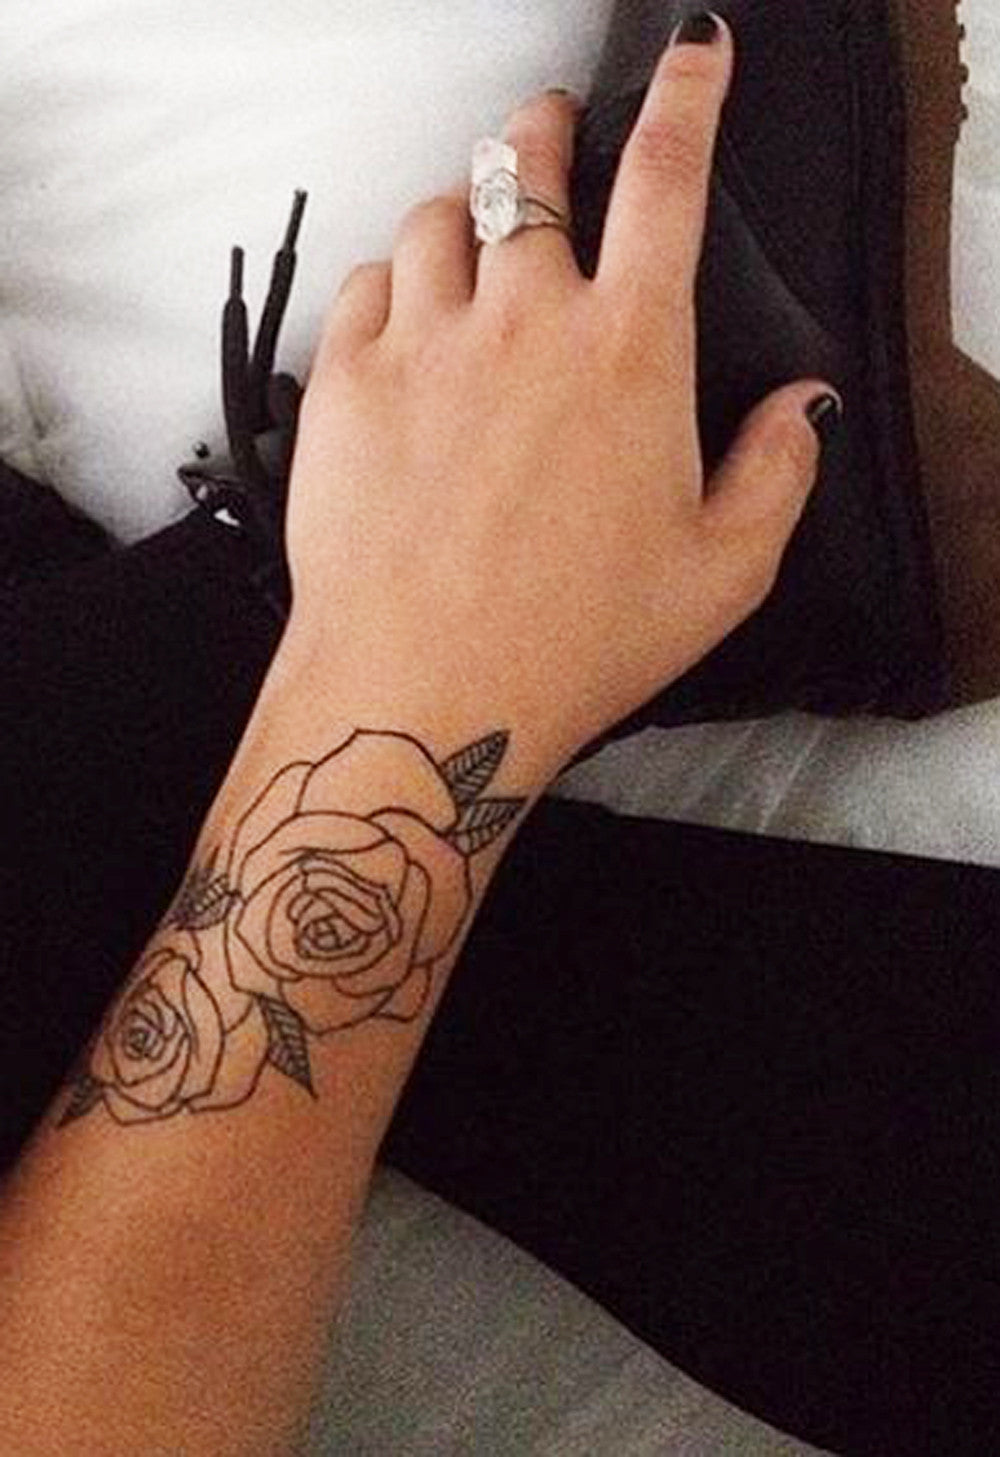 Black Rose Forearm Tattoo Ideas for Women - MyBodiArt.com